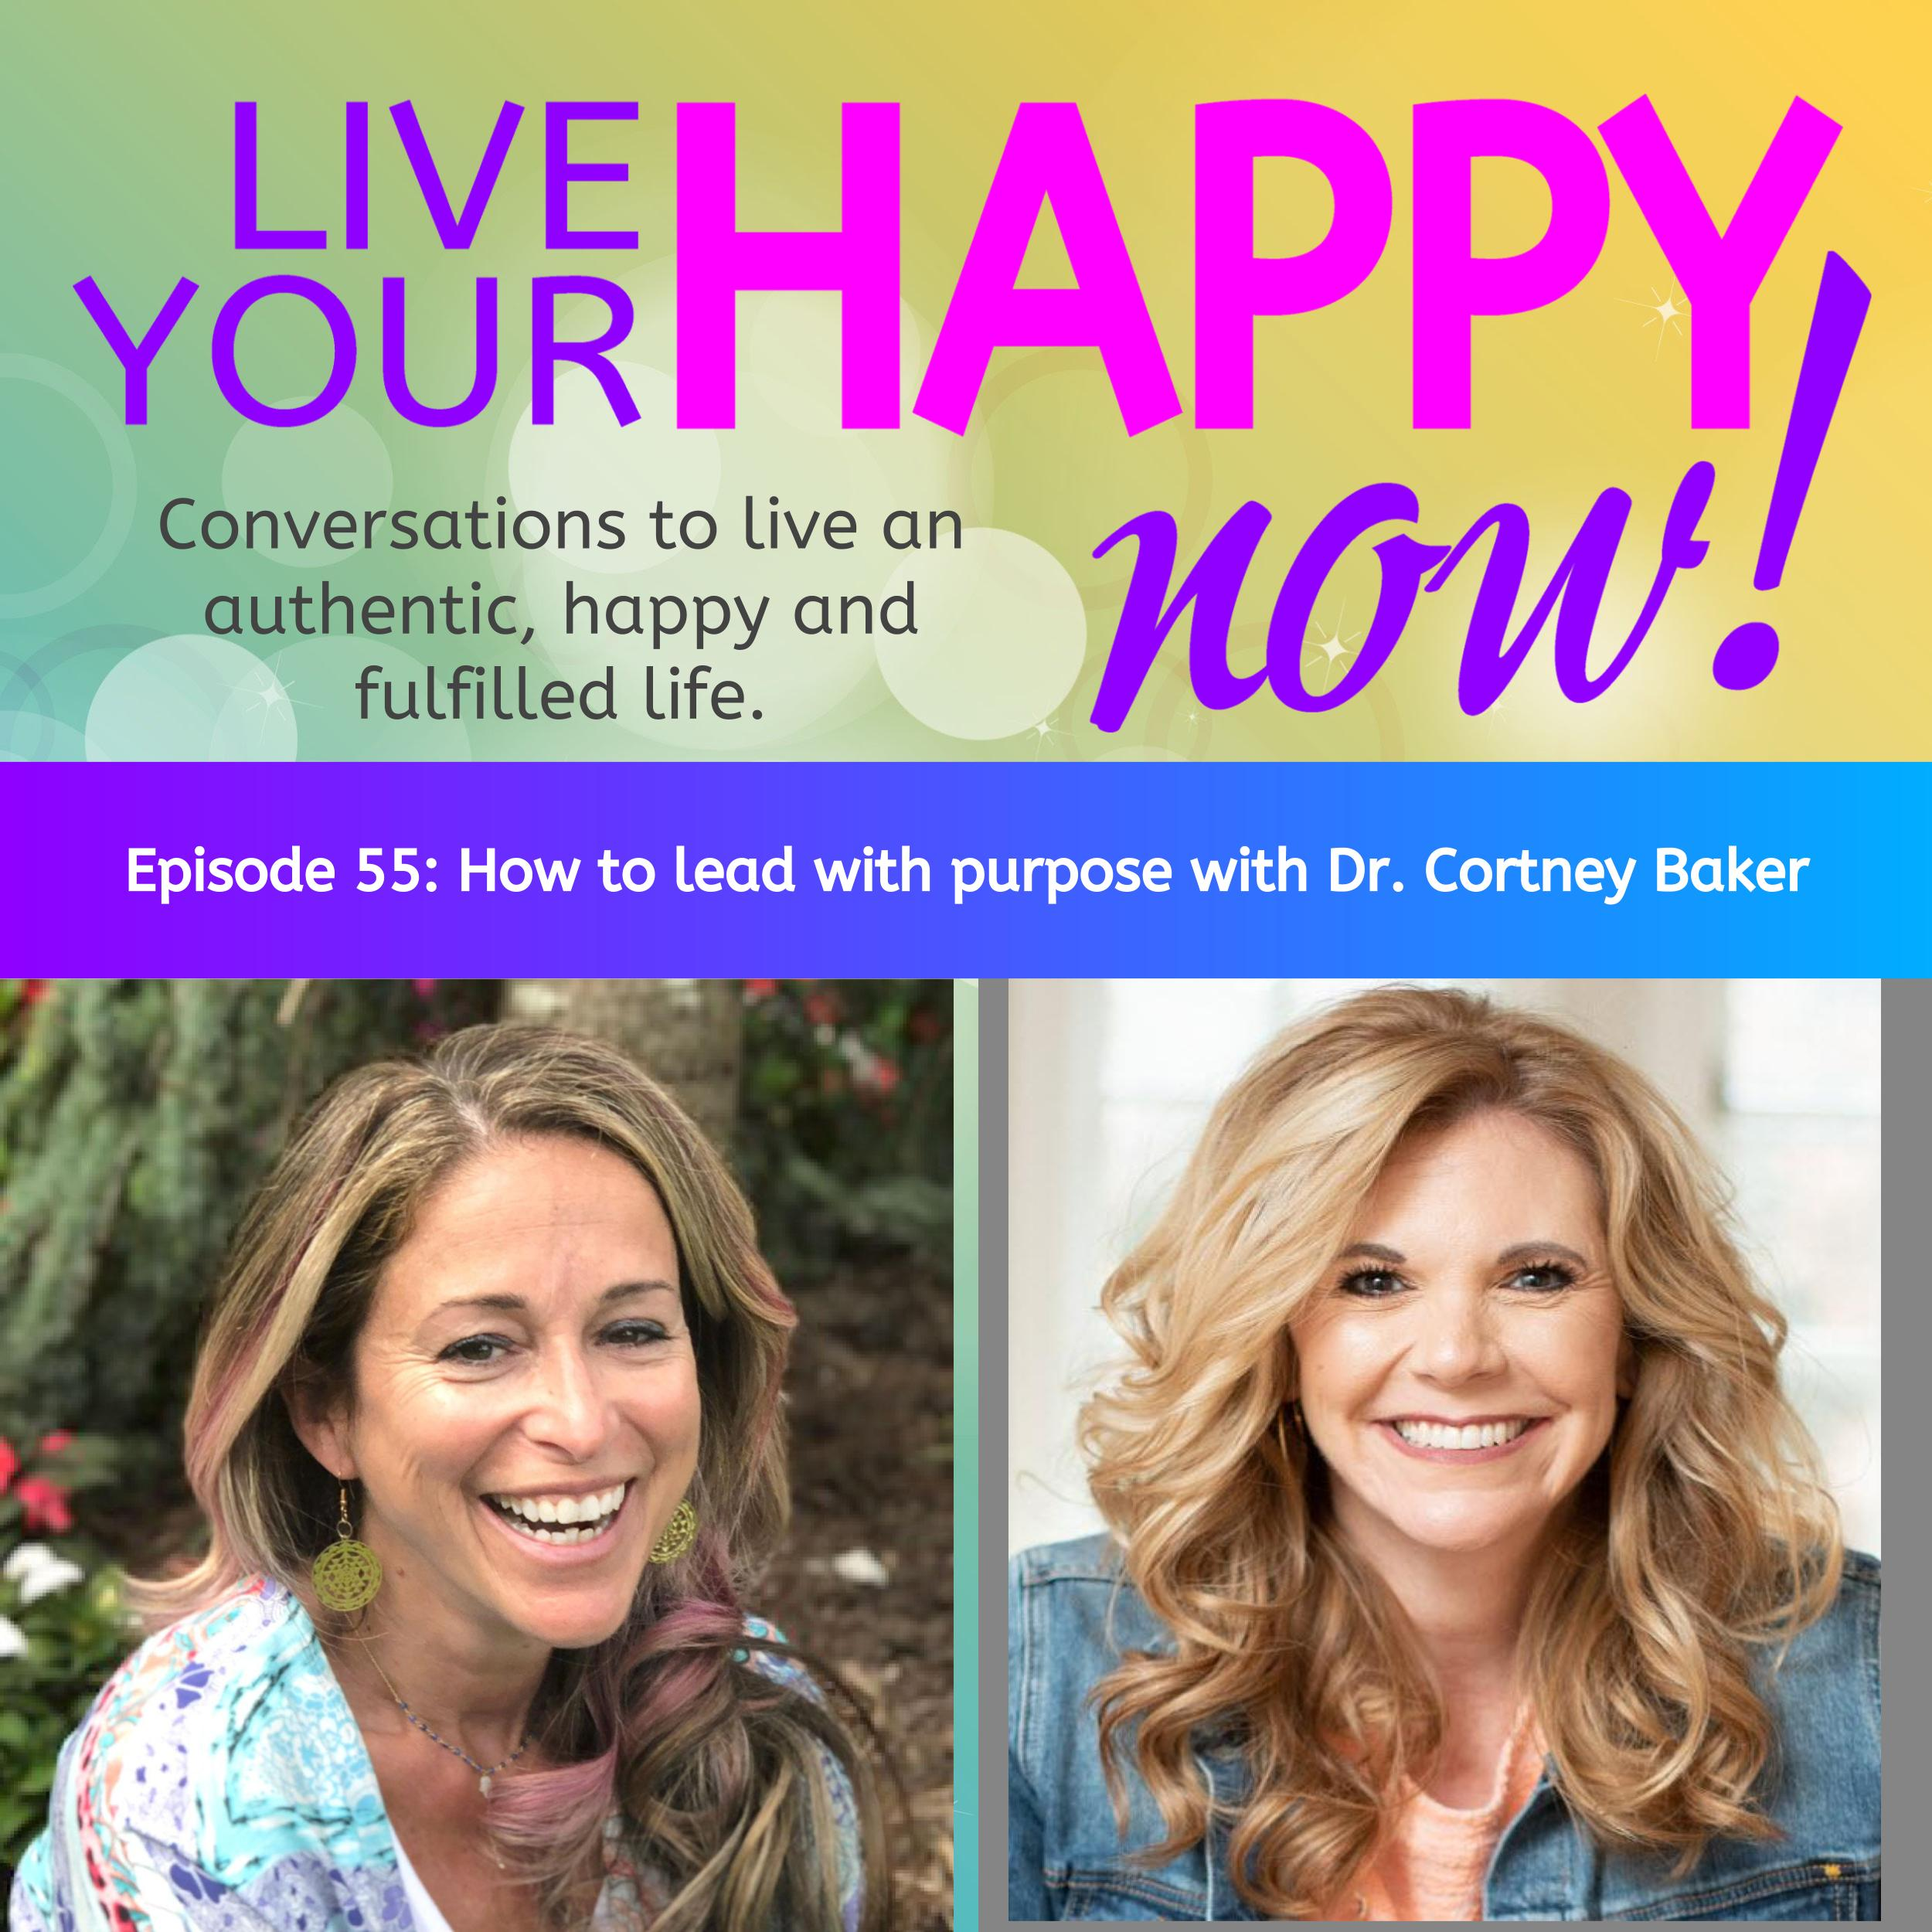 Artwork for Episode 55: How to lead with purpose with Dr. Cortney Baker